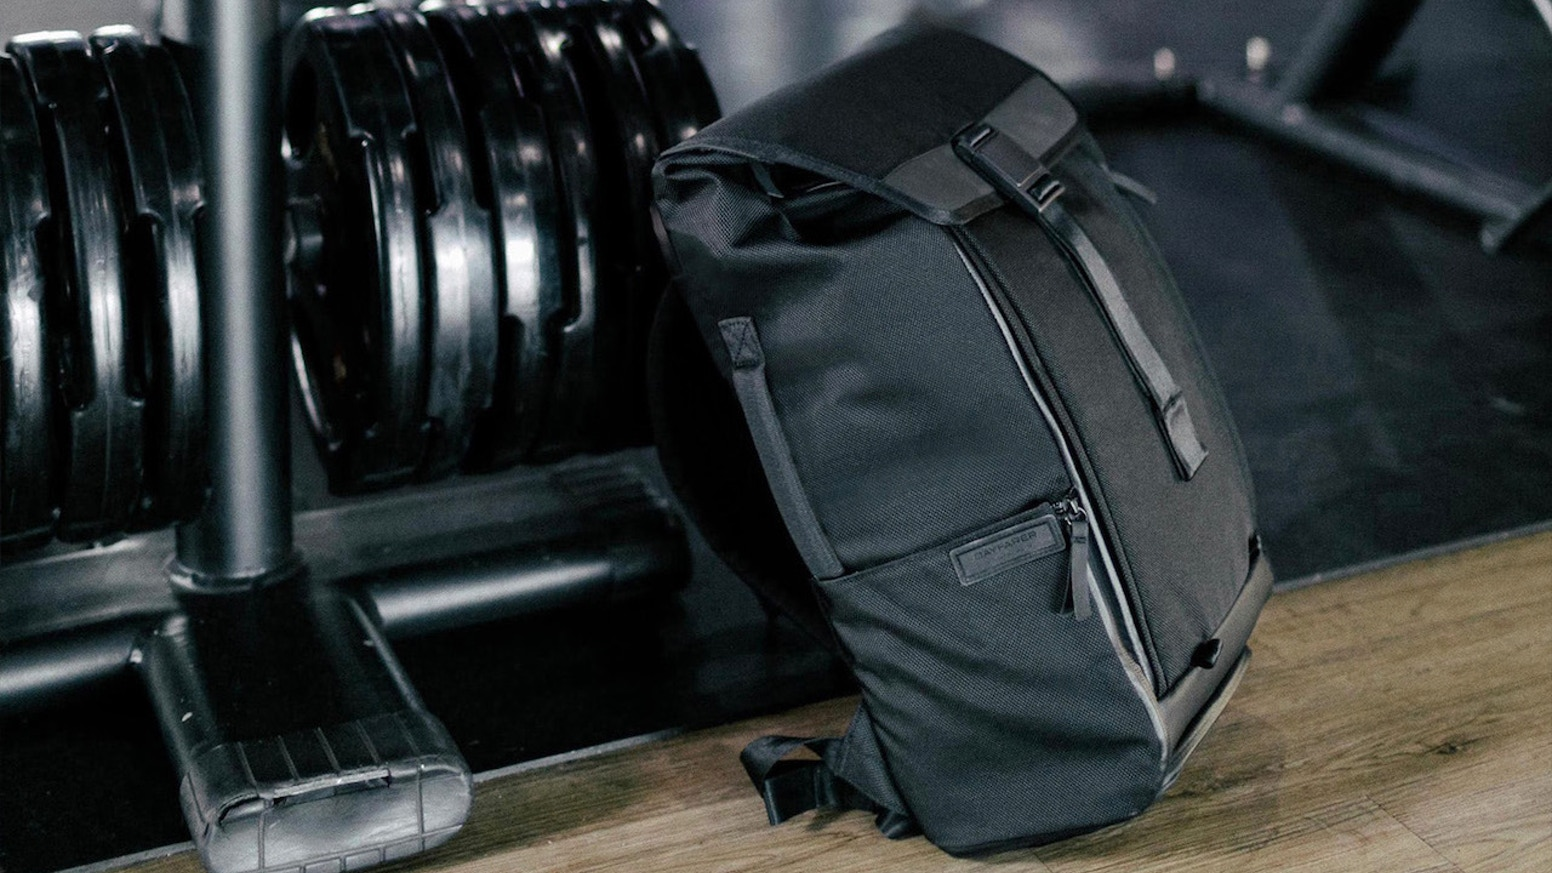 A sleek and functional backpack for everyday use, which blurs the line between sport and work.